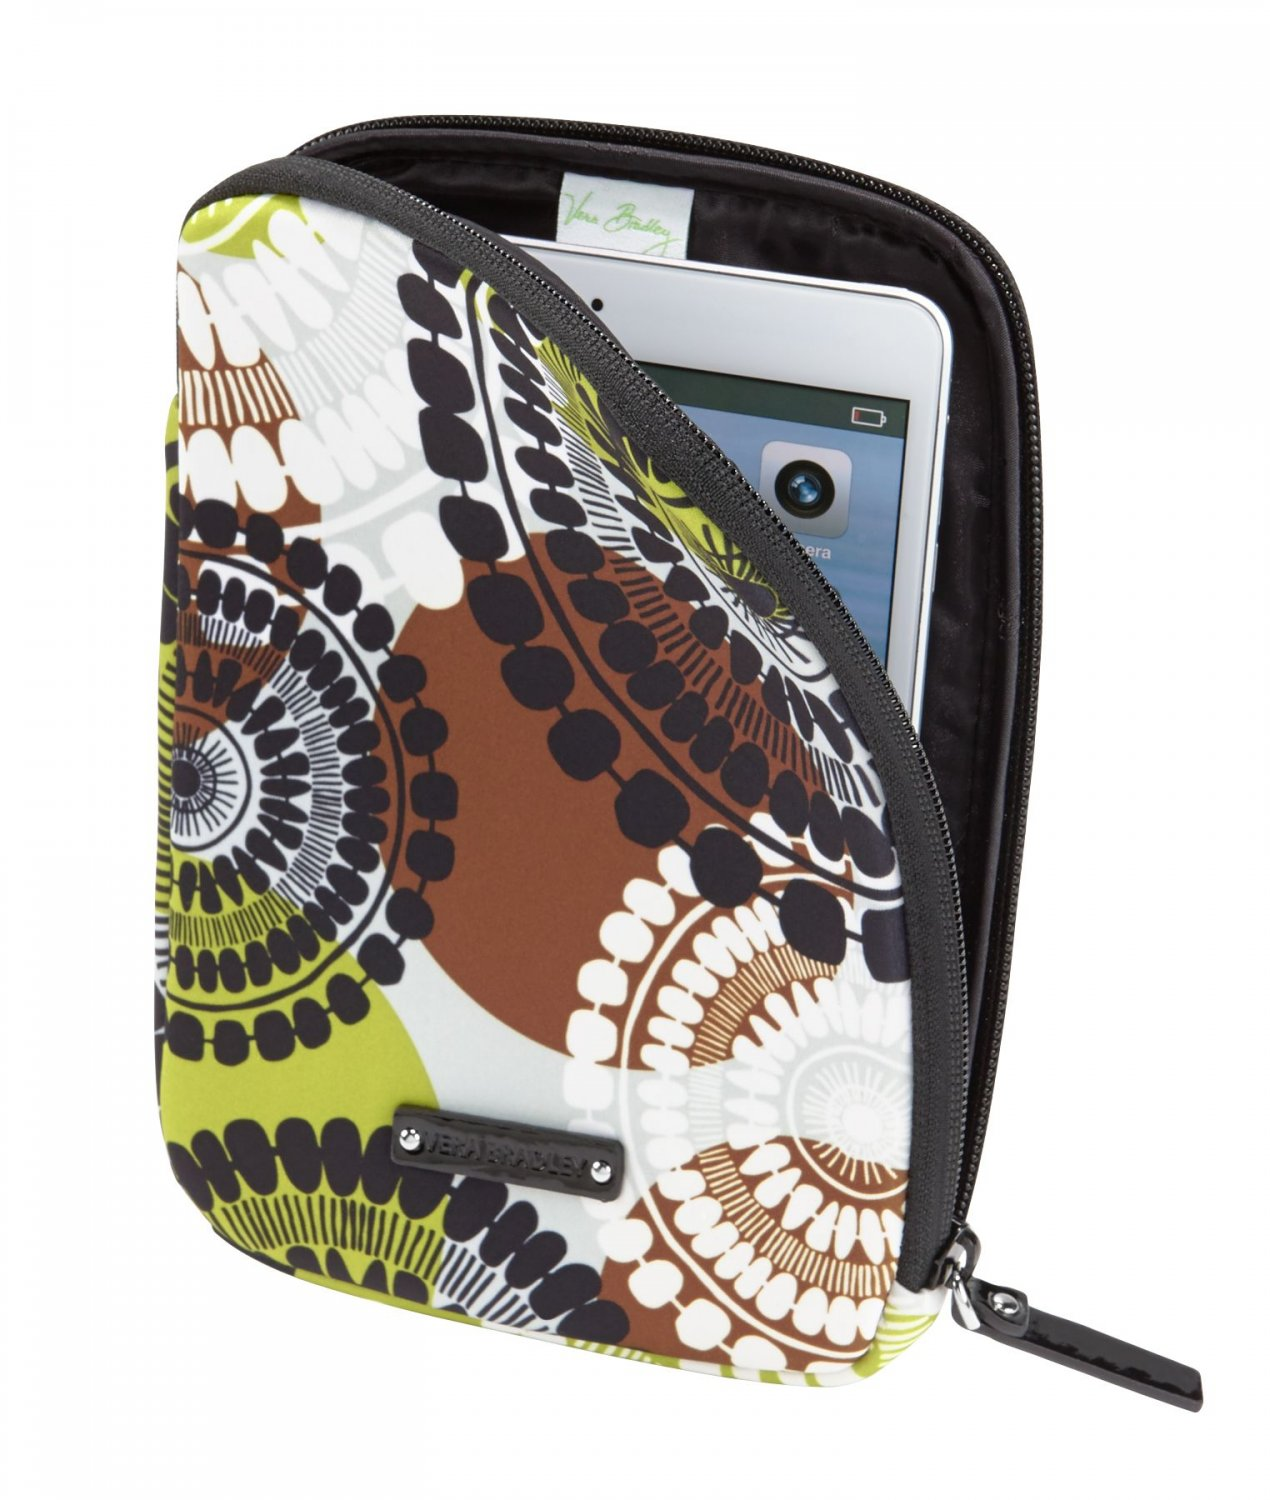 a1fd8c4a33 Vera Bradley Neoprene Tablet Sleeve Cocoa Moss NWT Retired packing cube  iPad case